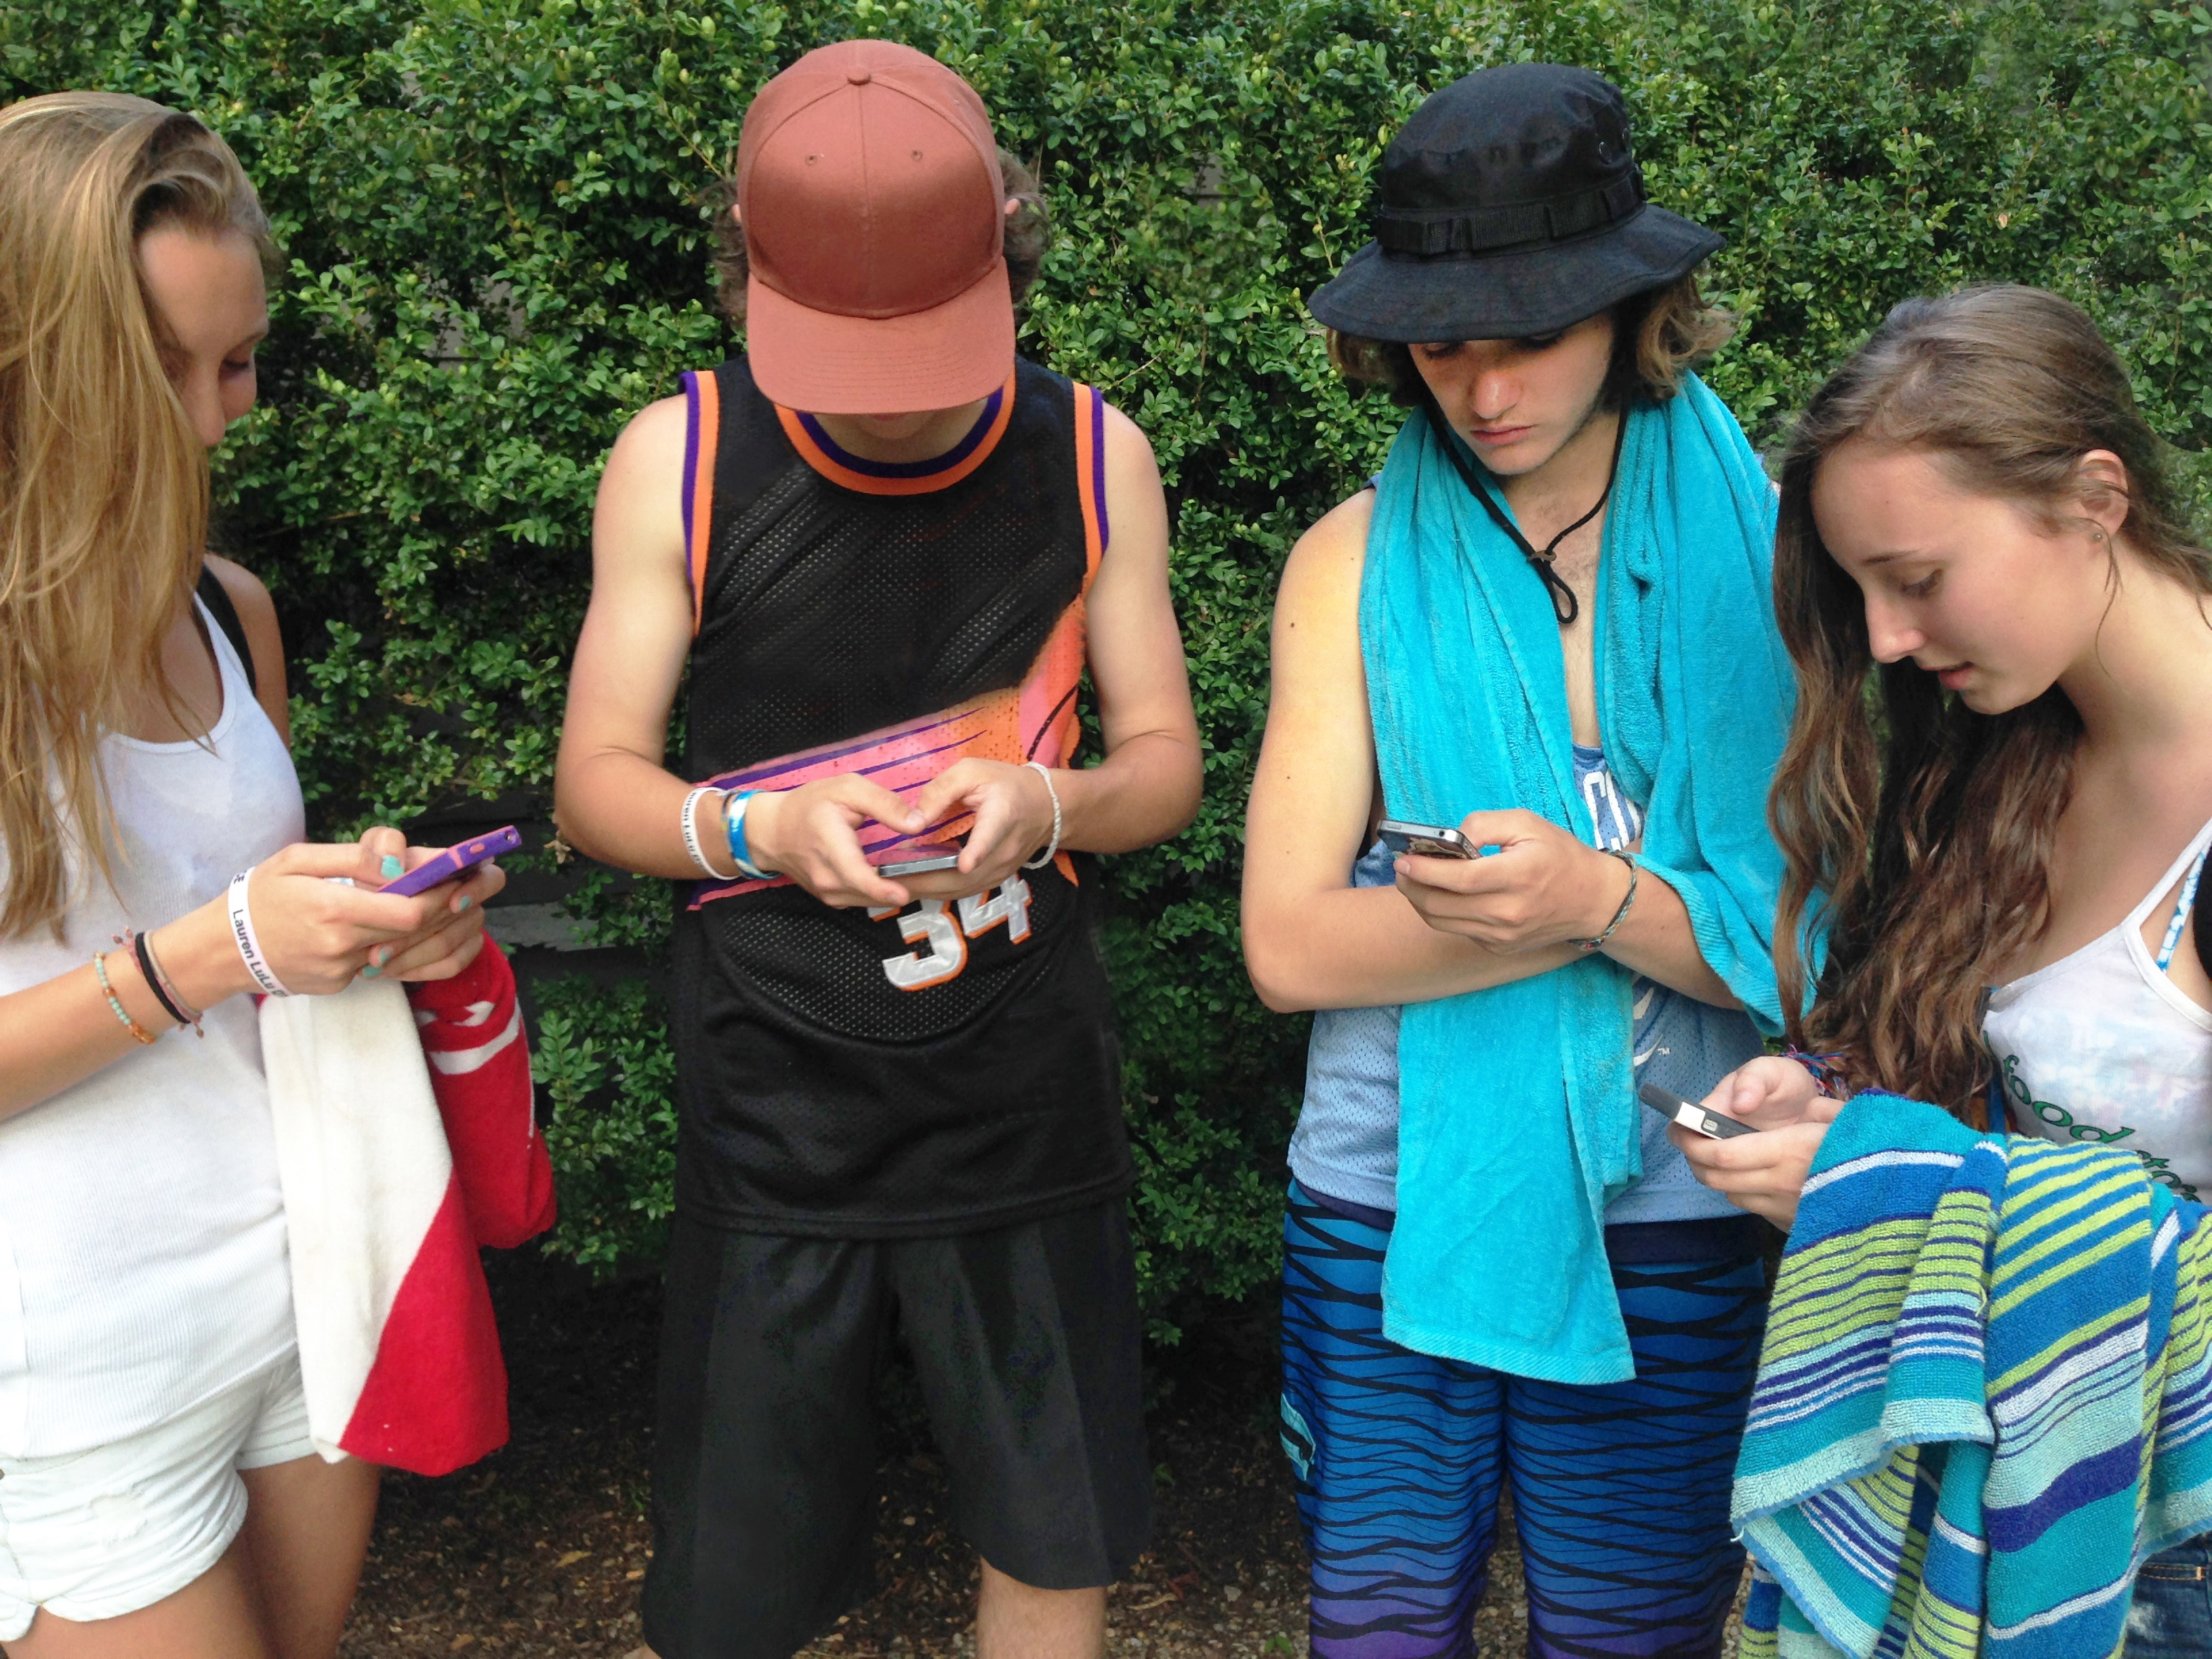 Highschoolers have more ways to communicate than ever.